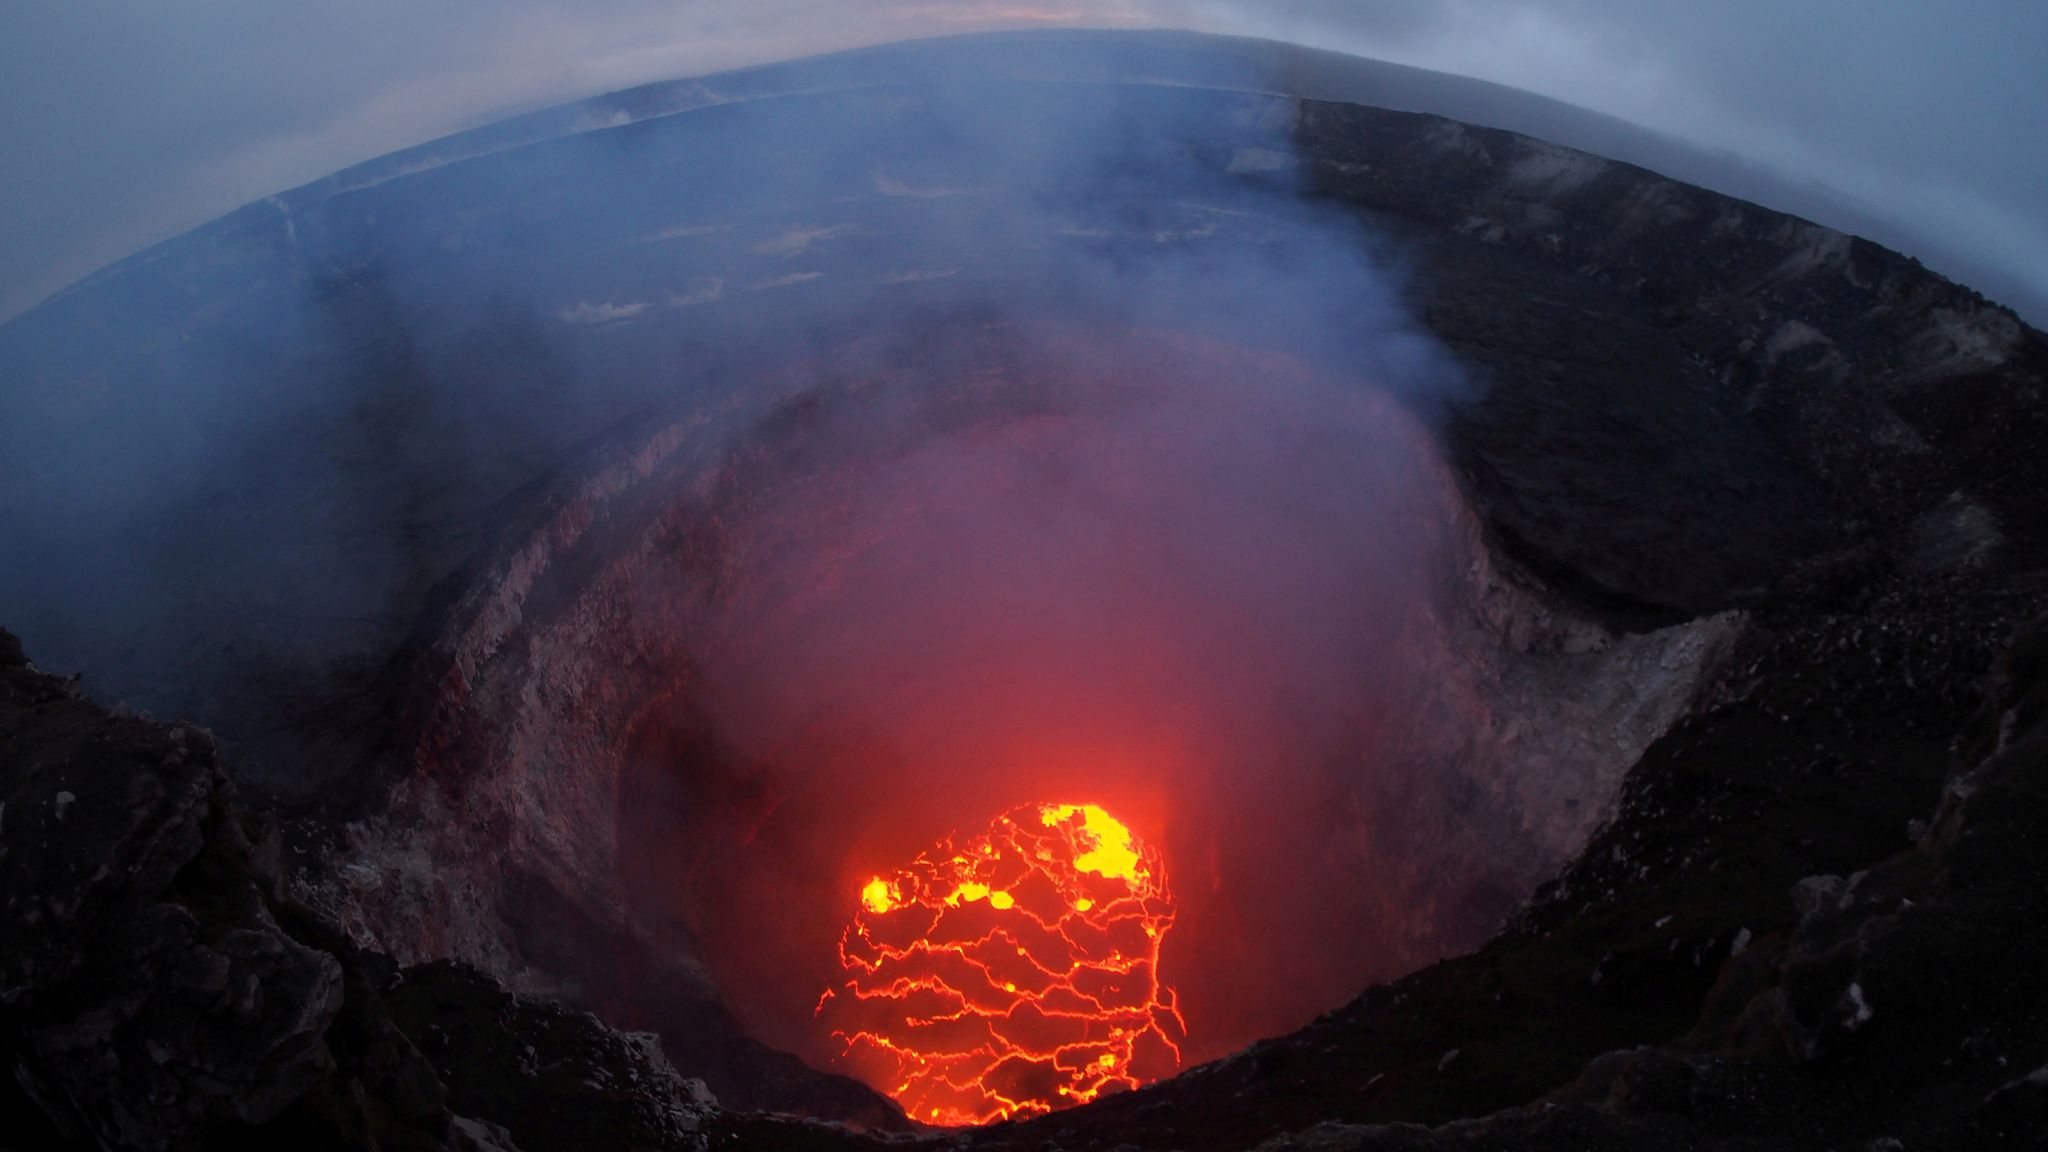 Sunset crater volcano webquest answers